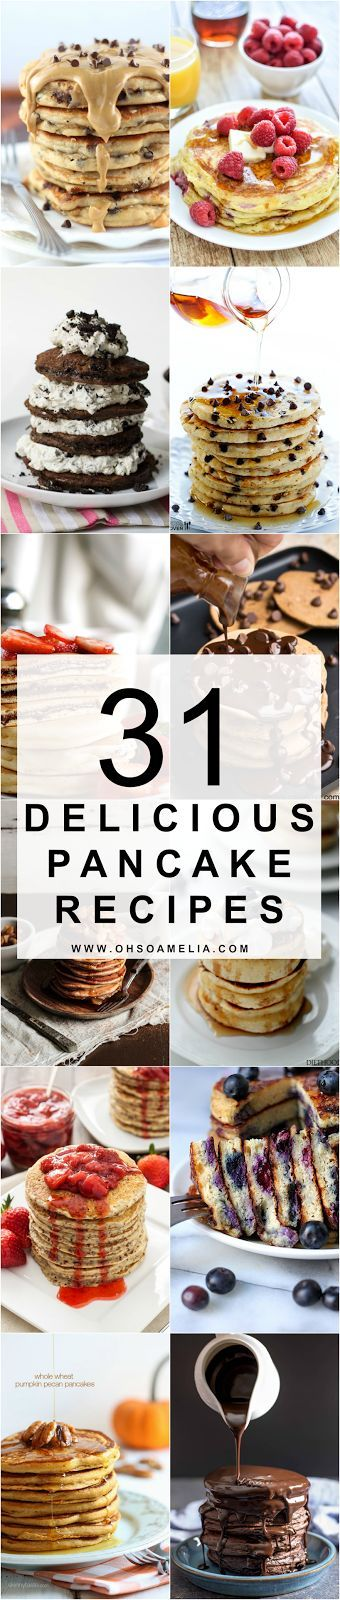 With Pancake Day just around the corner how about trying some of these 31 Delicious Pancake Recipes?!